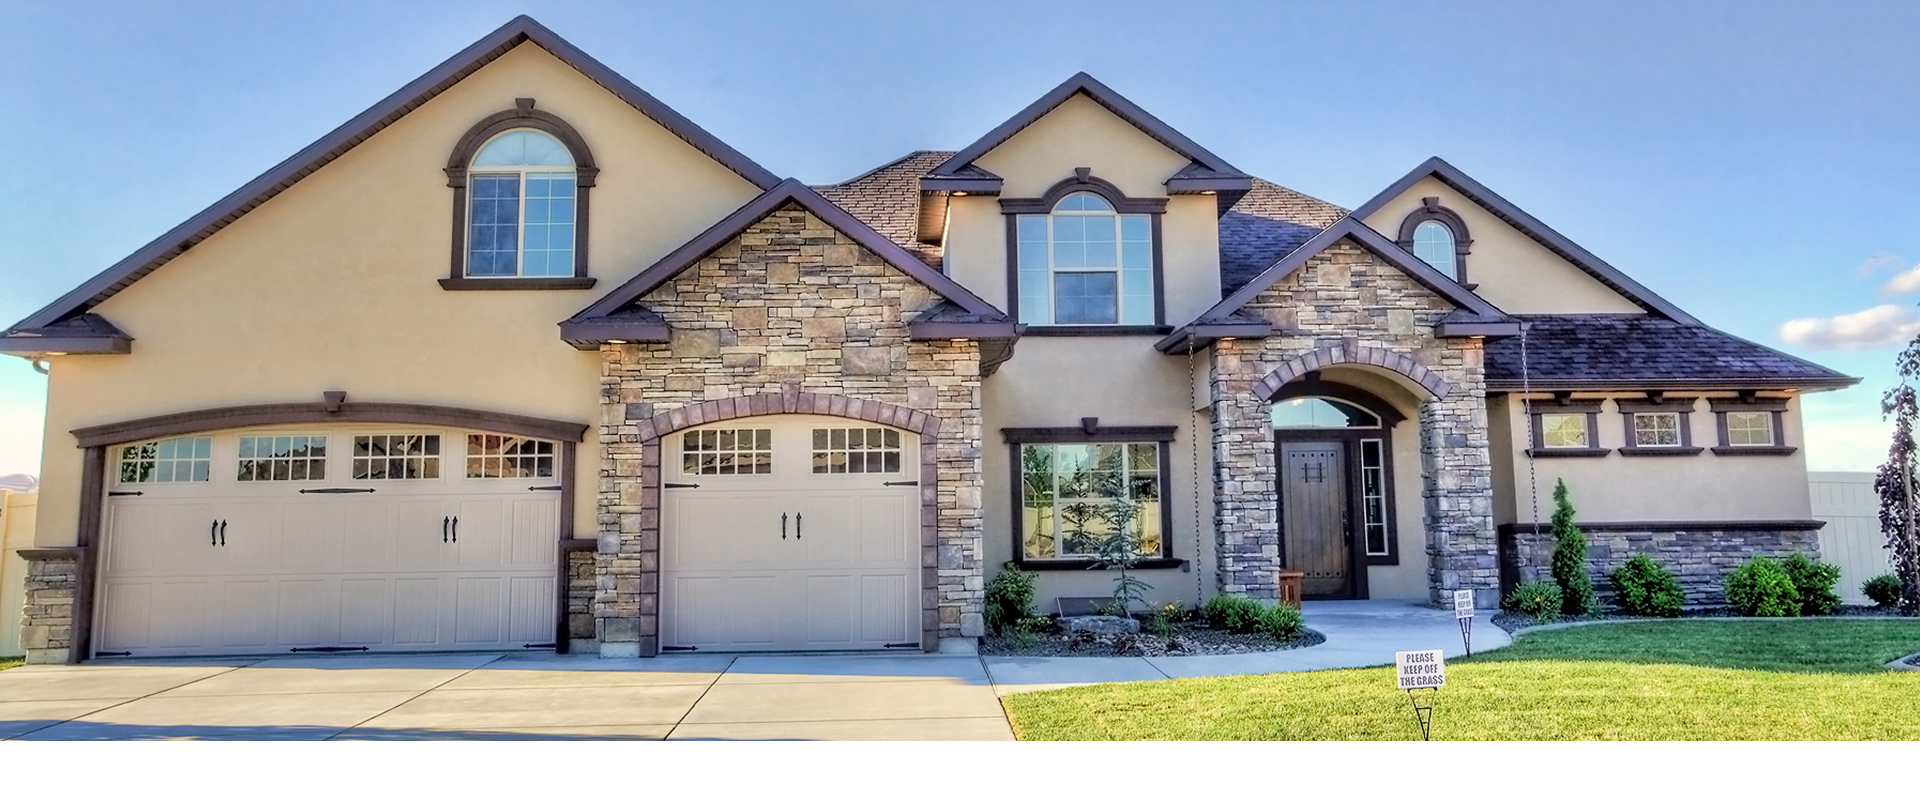 2015 parade of homes twin falls id for Home builders twin falls idaho